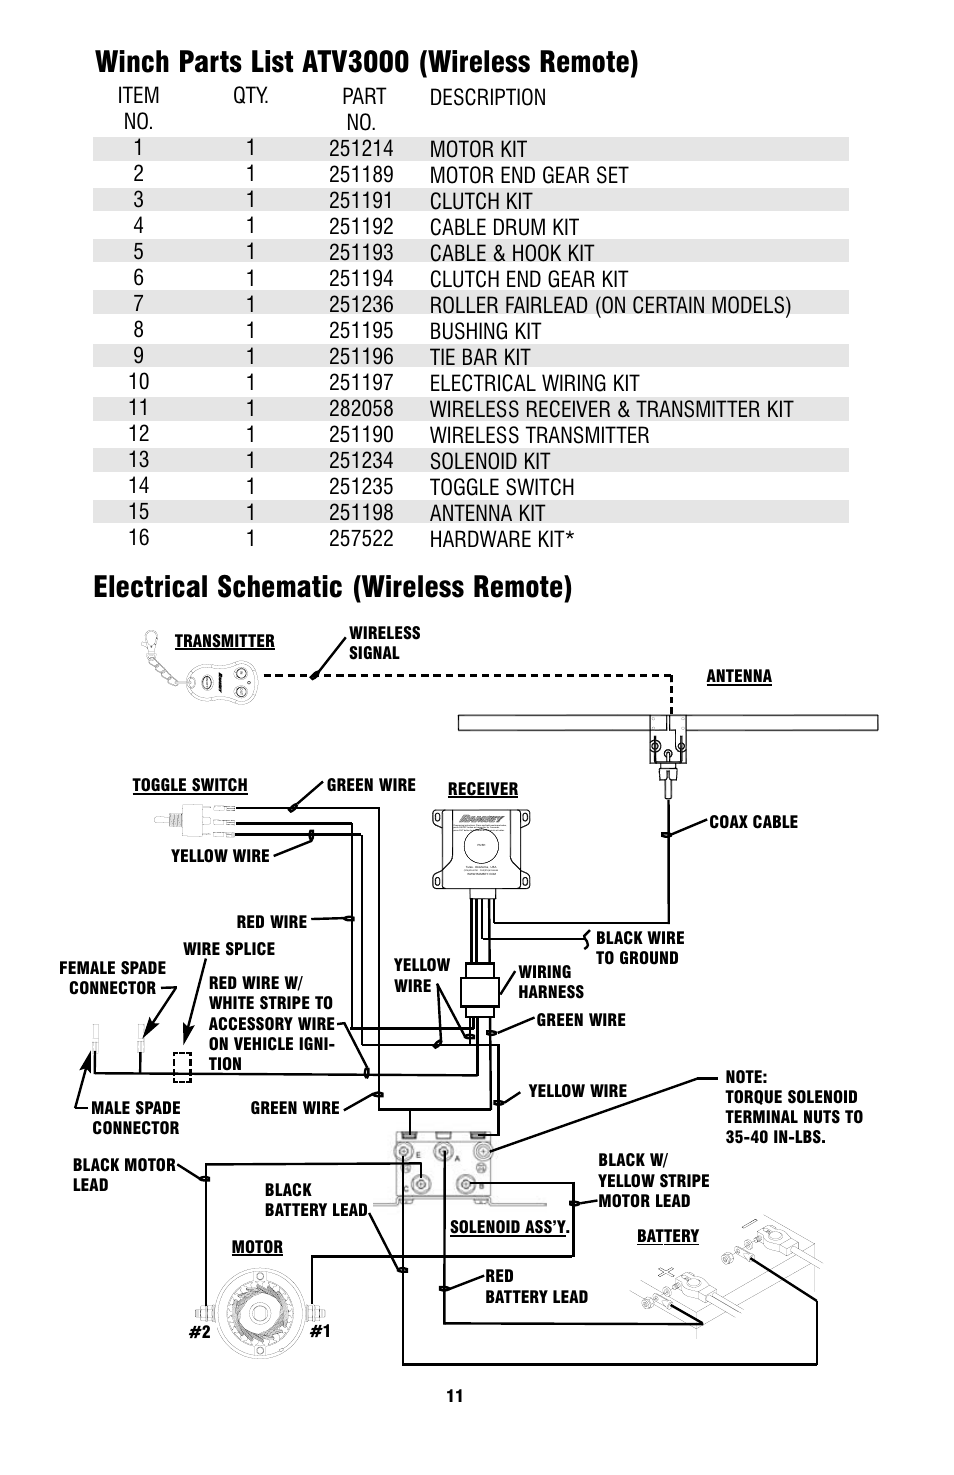 ramsey winch atv 3000 page11 ramsey winch atv 3000 user manual page 11 16 ramsey winch motor wiring diagram at n-0.co